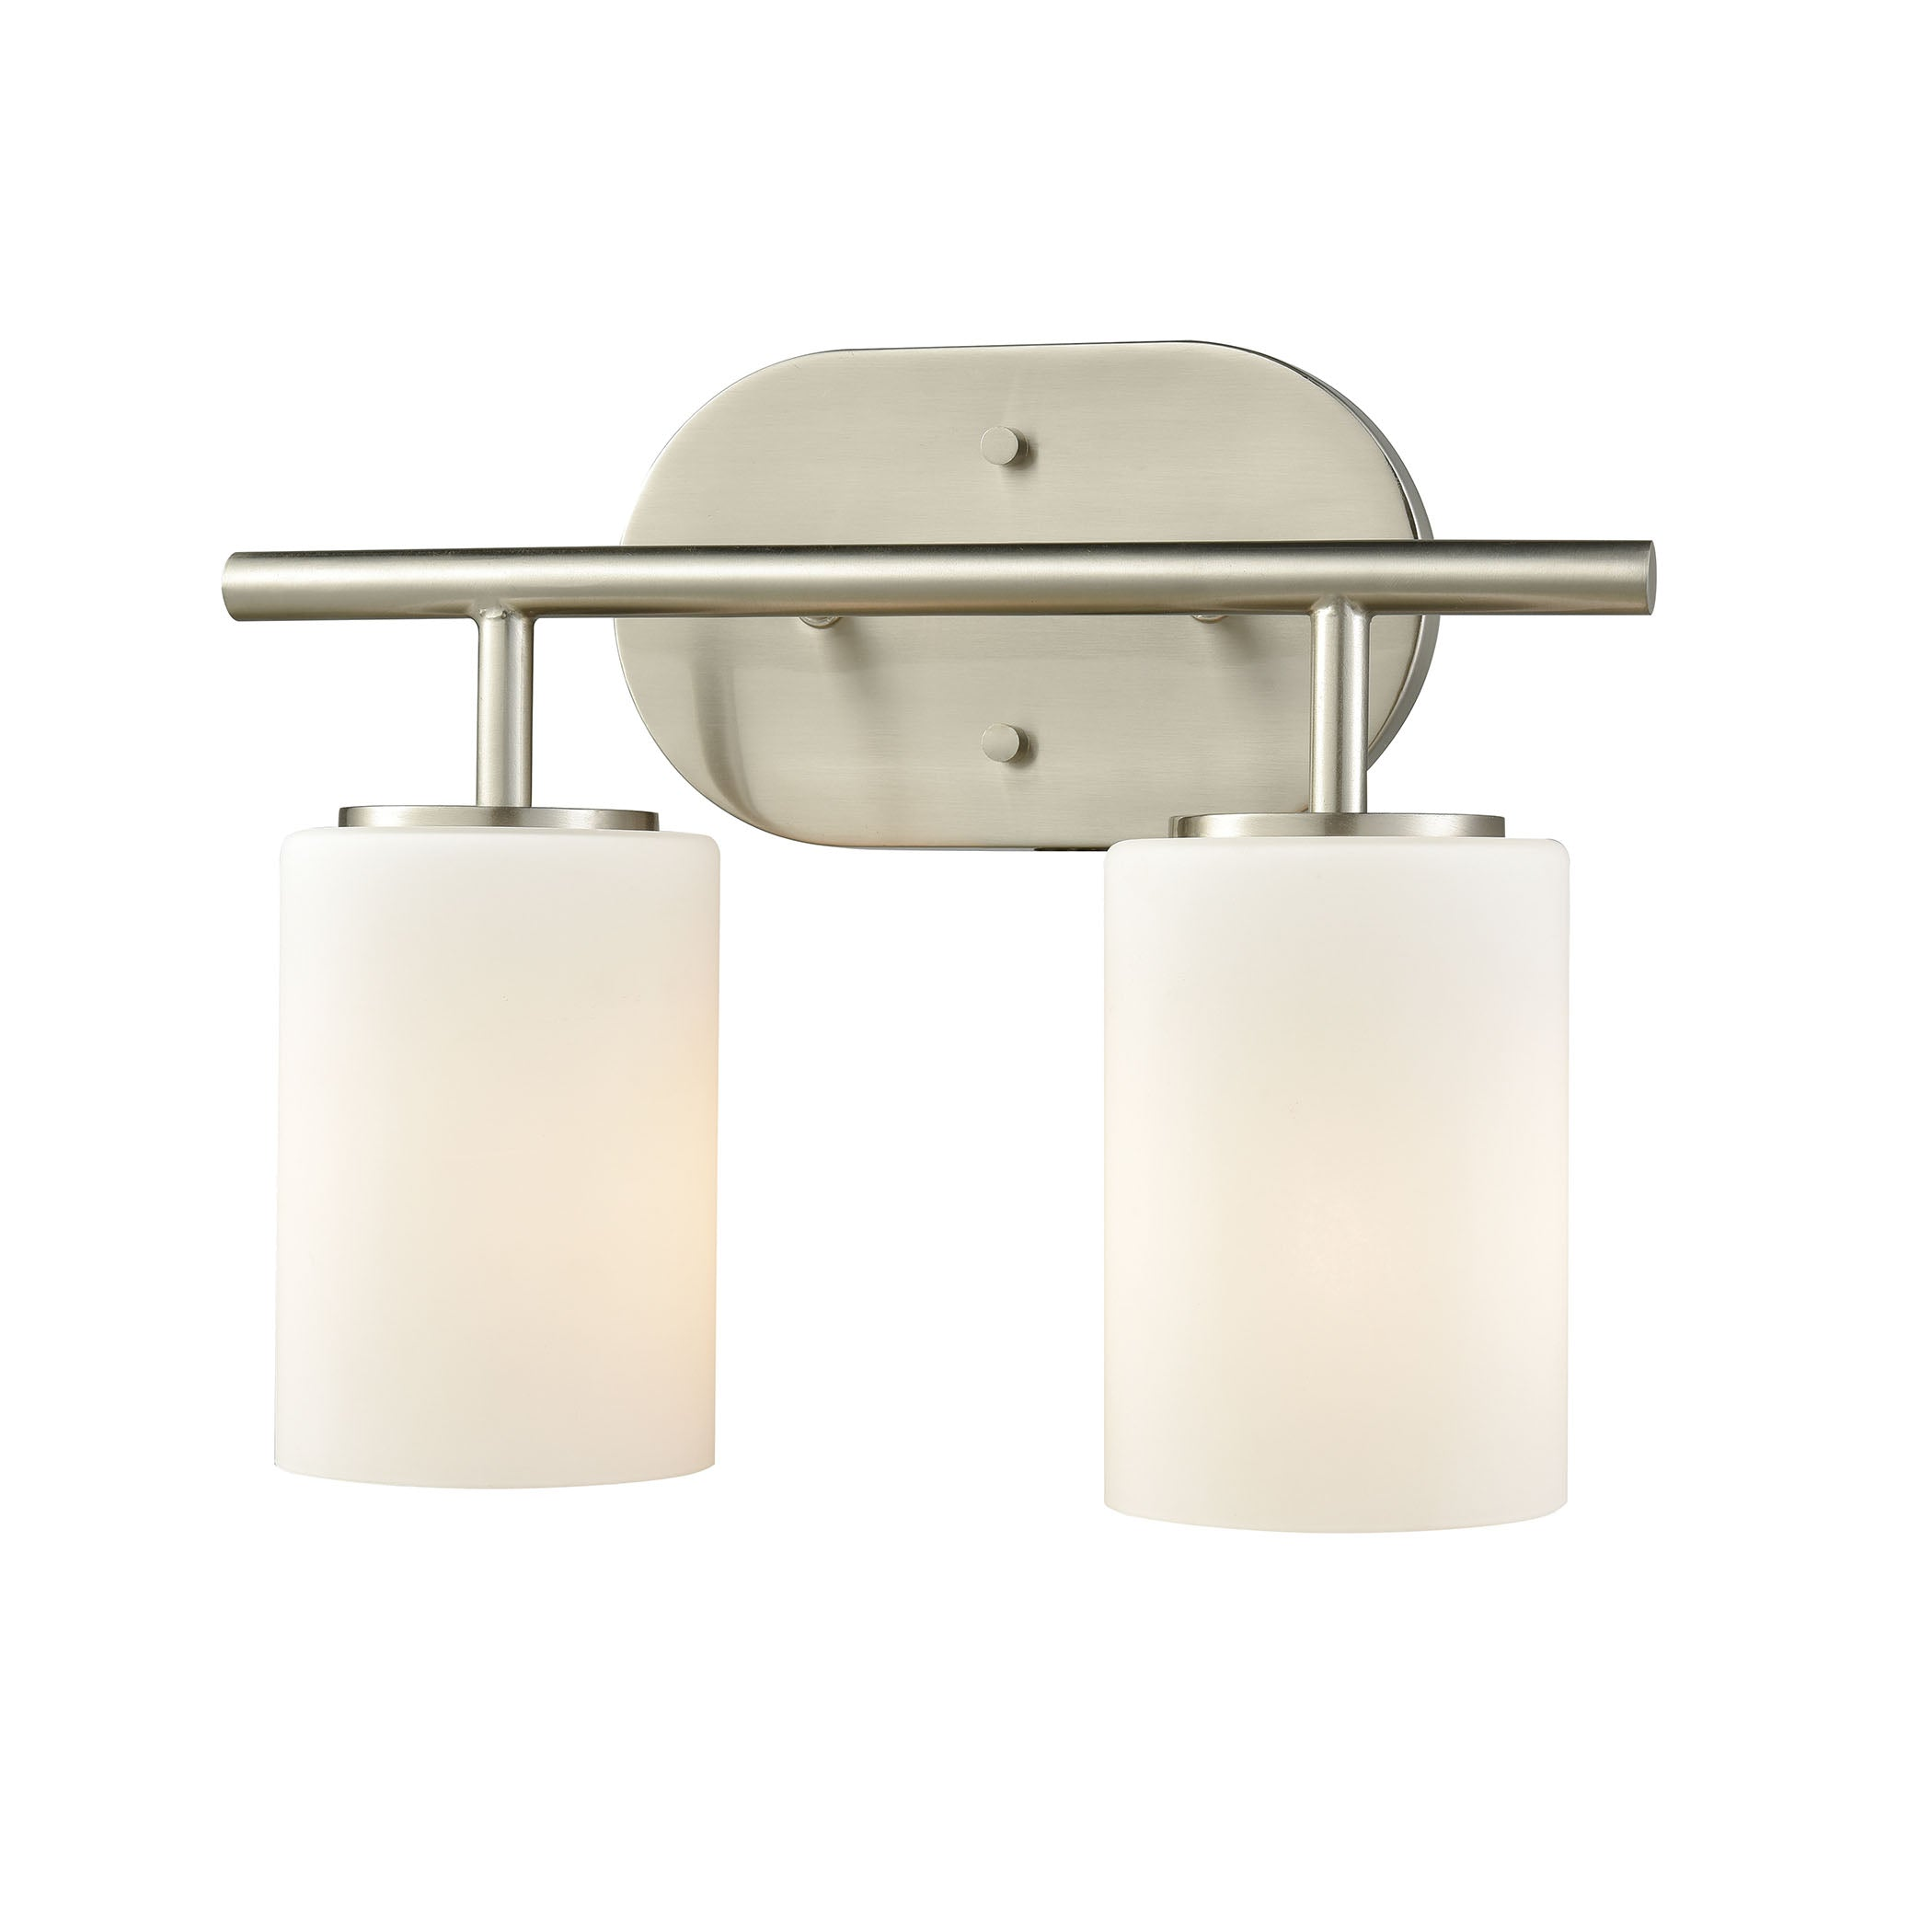 ELK Lighting  Pemlico 2 Light Vanity in Satin Nickel with White Glass